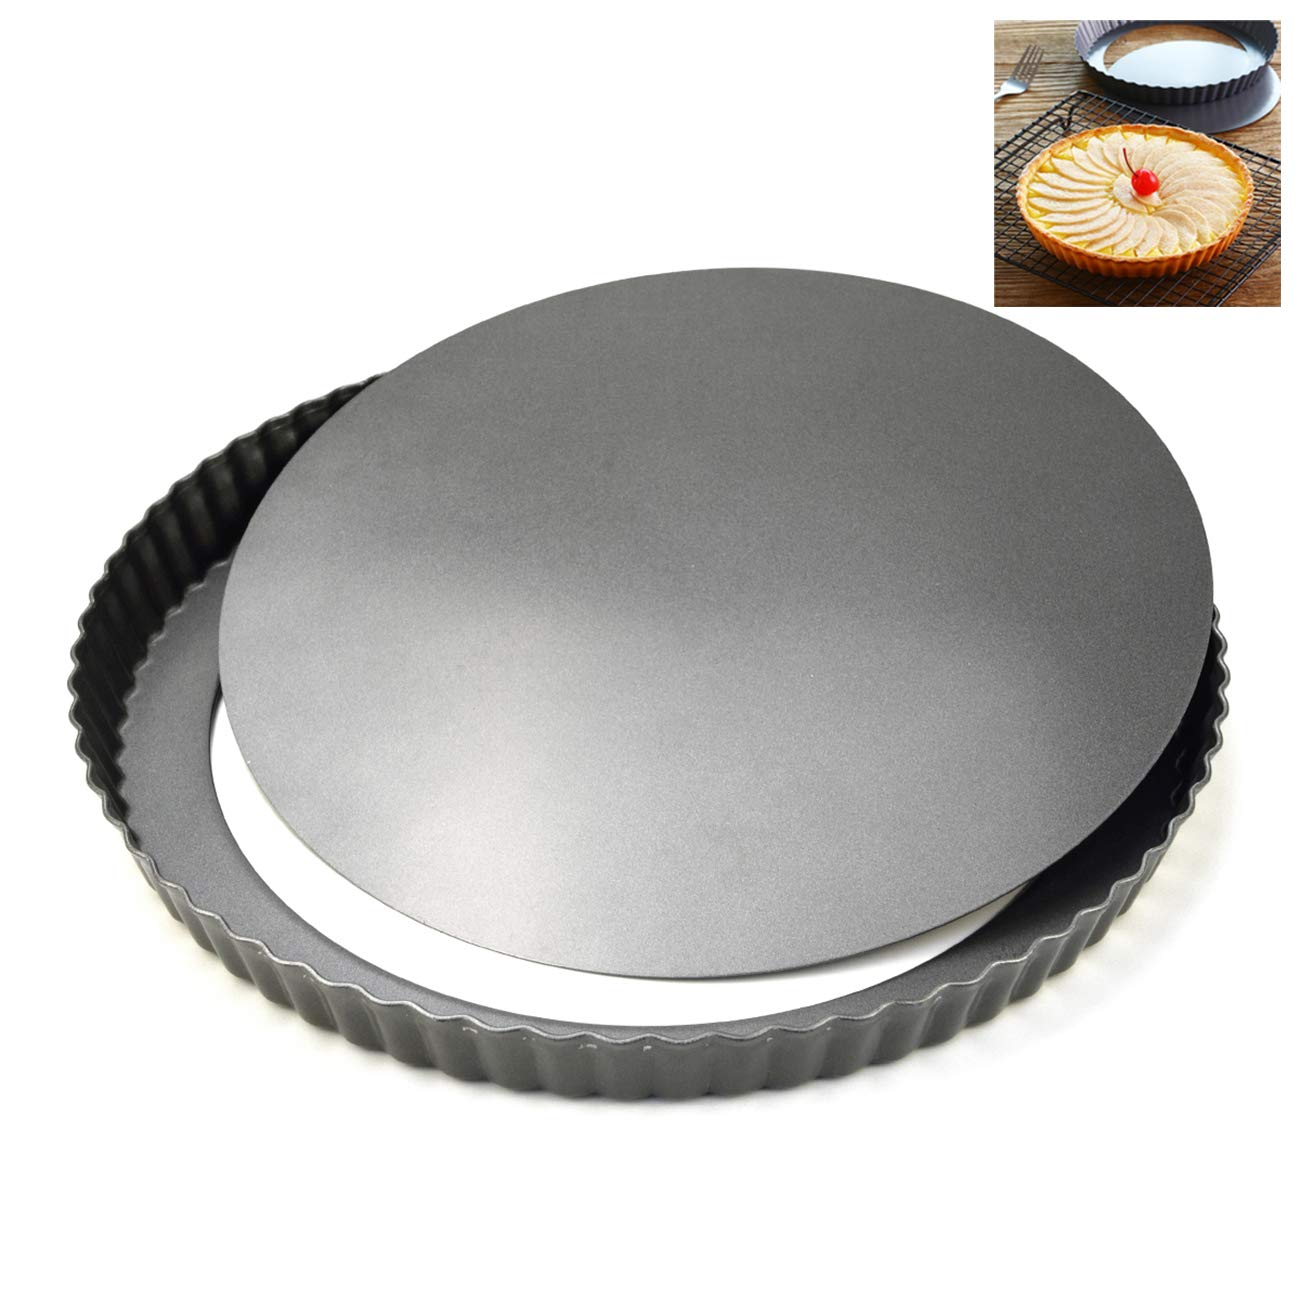 LUUFAN Non-Stick Quiche Pan Tart Pan with Loose Bottom, Round Fluted Flan Tin (8.6inch/28cm) by LUUFAN